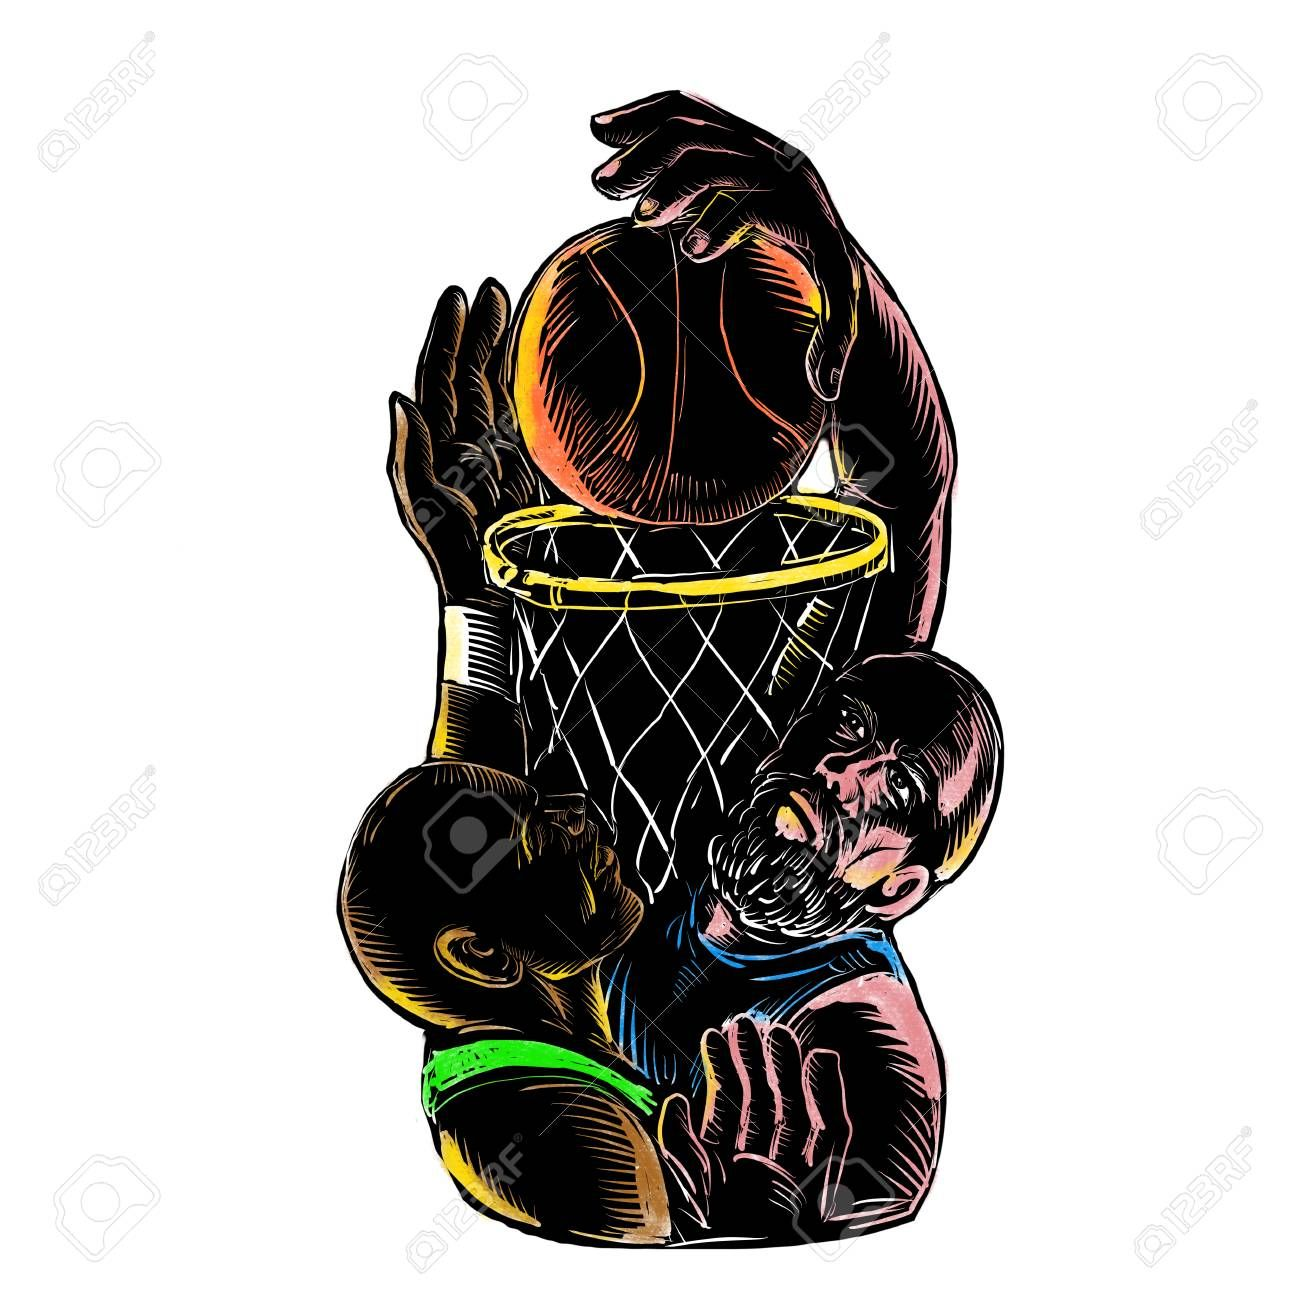 Tattoo style illustration of a Caucasian basketball player